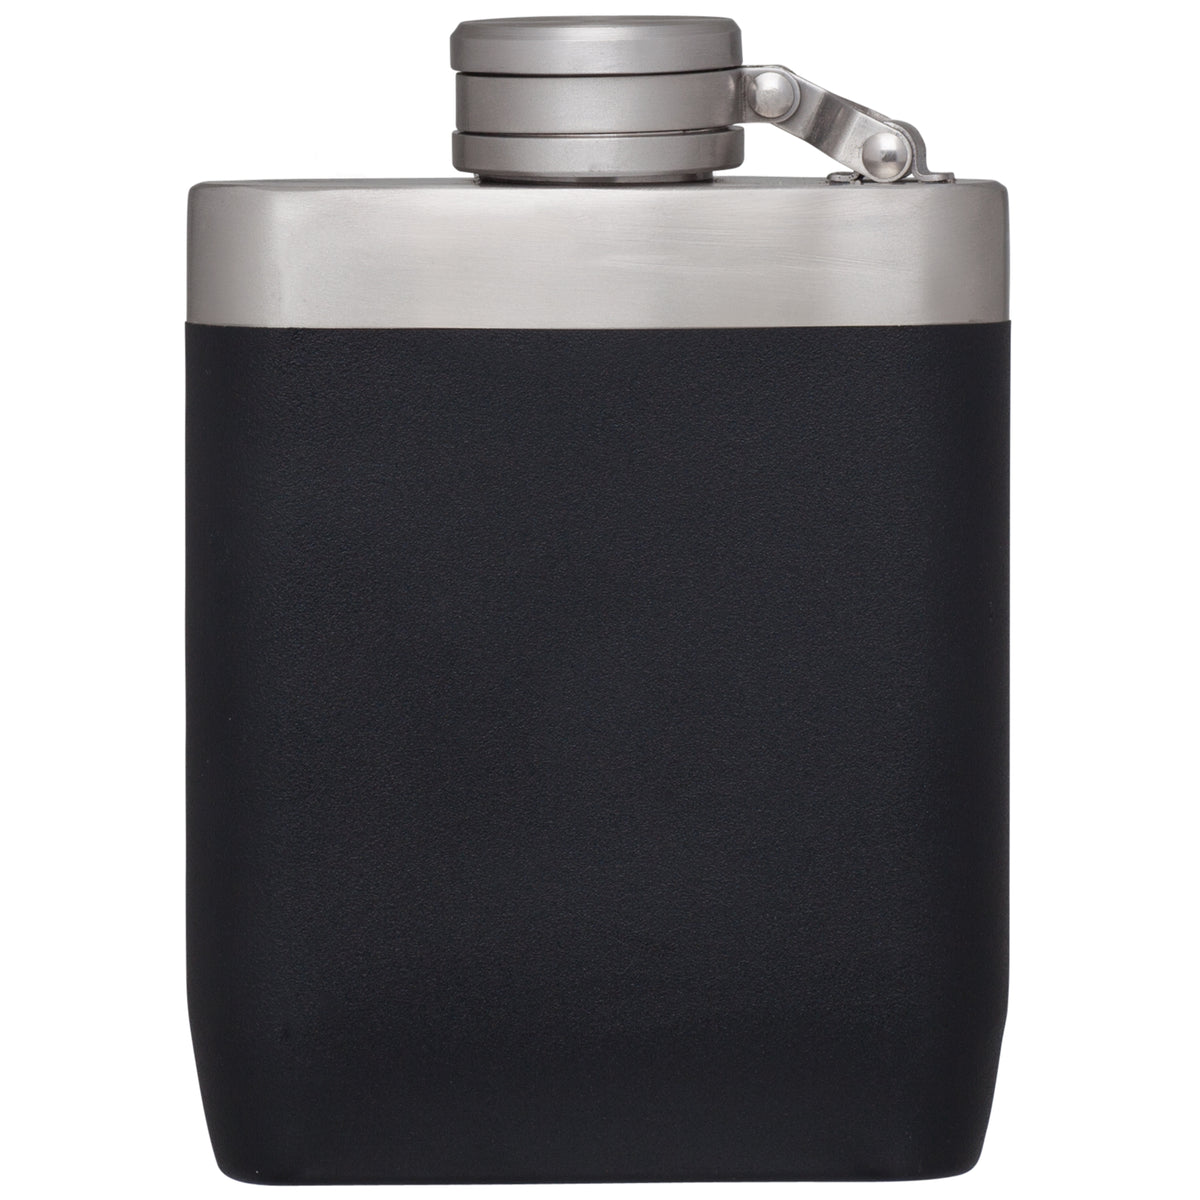 Stanley-Master Flask 8oz 236ml Toughest of the Tough-Alcohol Flask-Gearaholic.com.sg